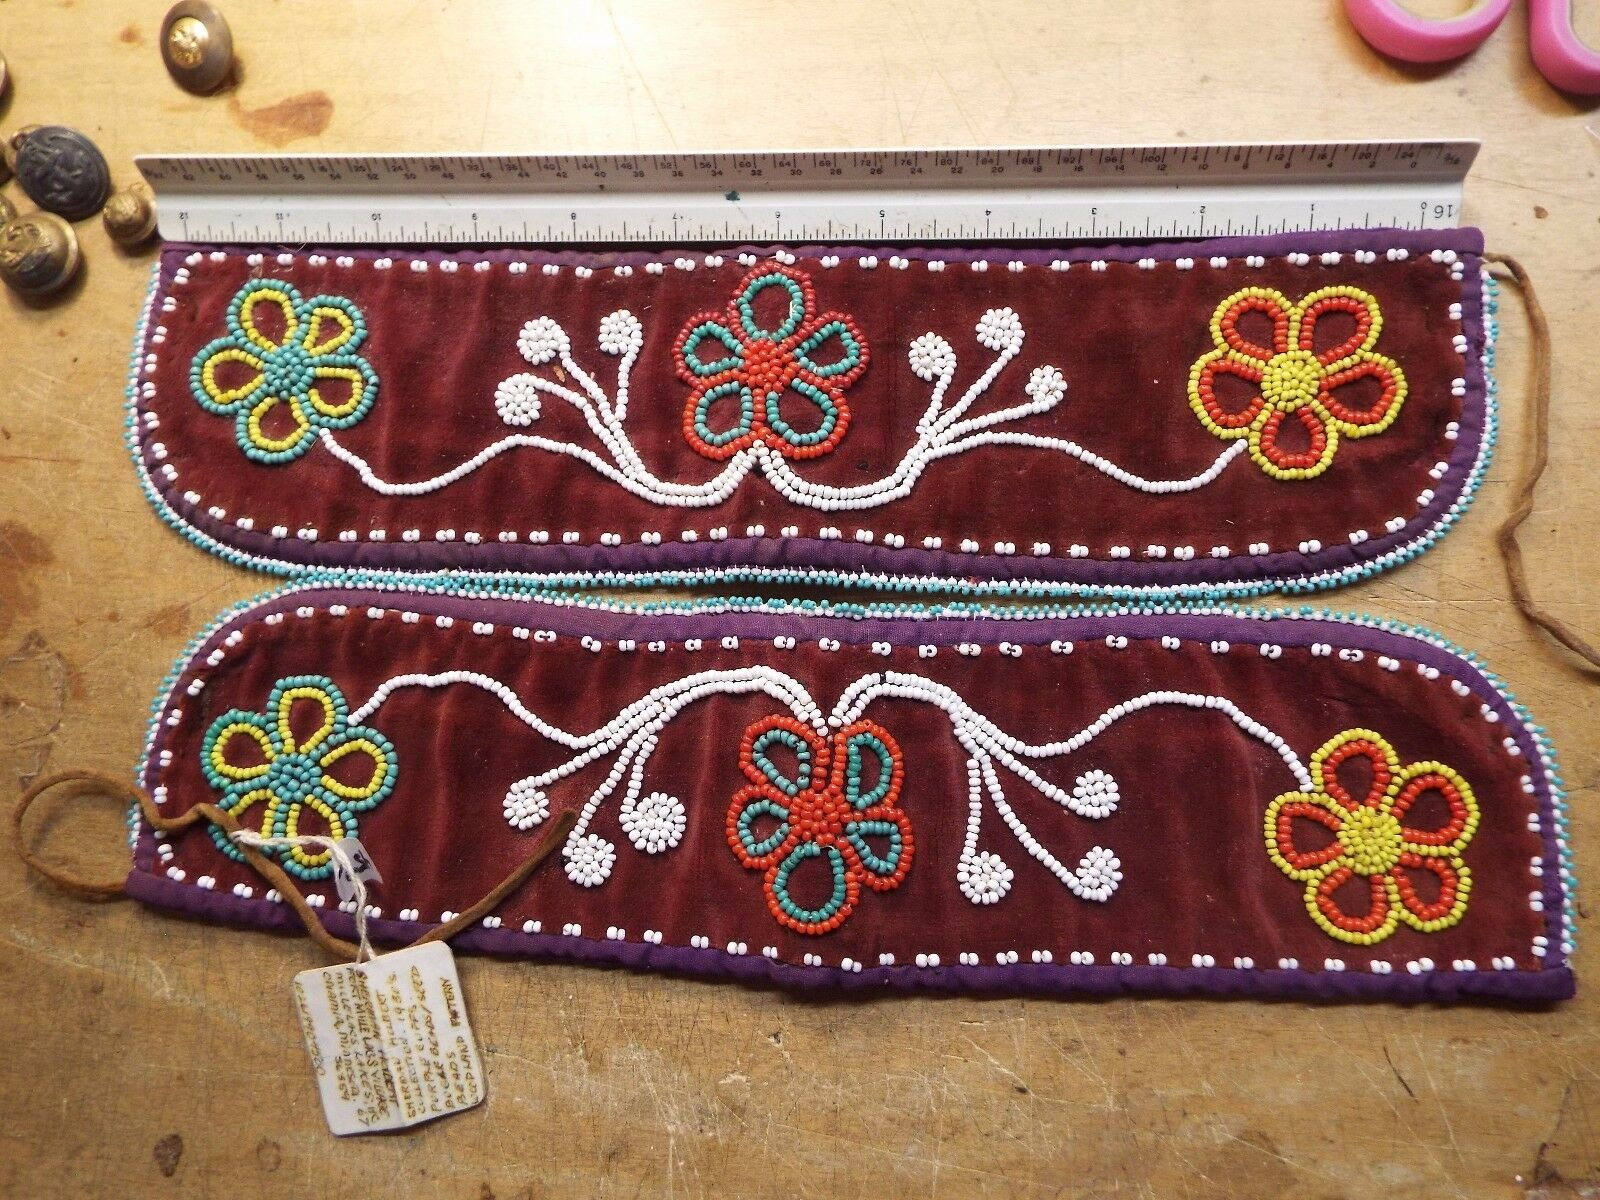 RARE NATIVE AMERICAN INDIAN BEADED CUFFS 1930s